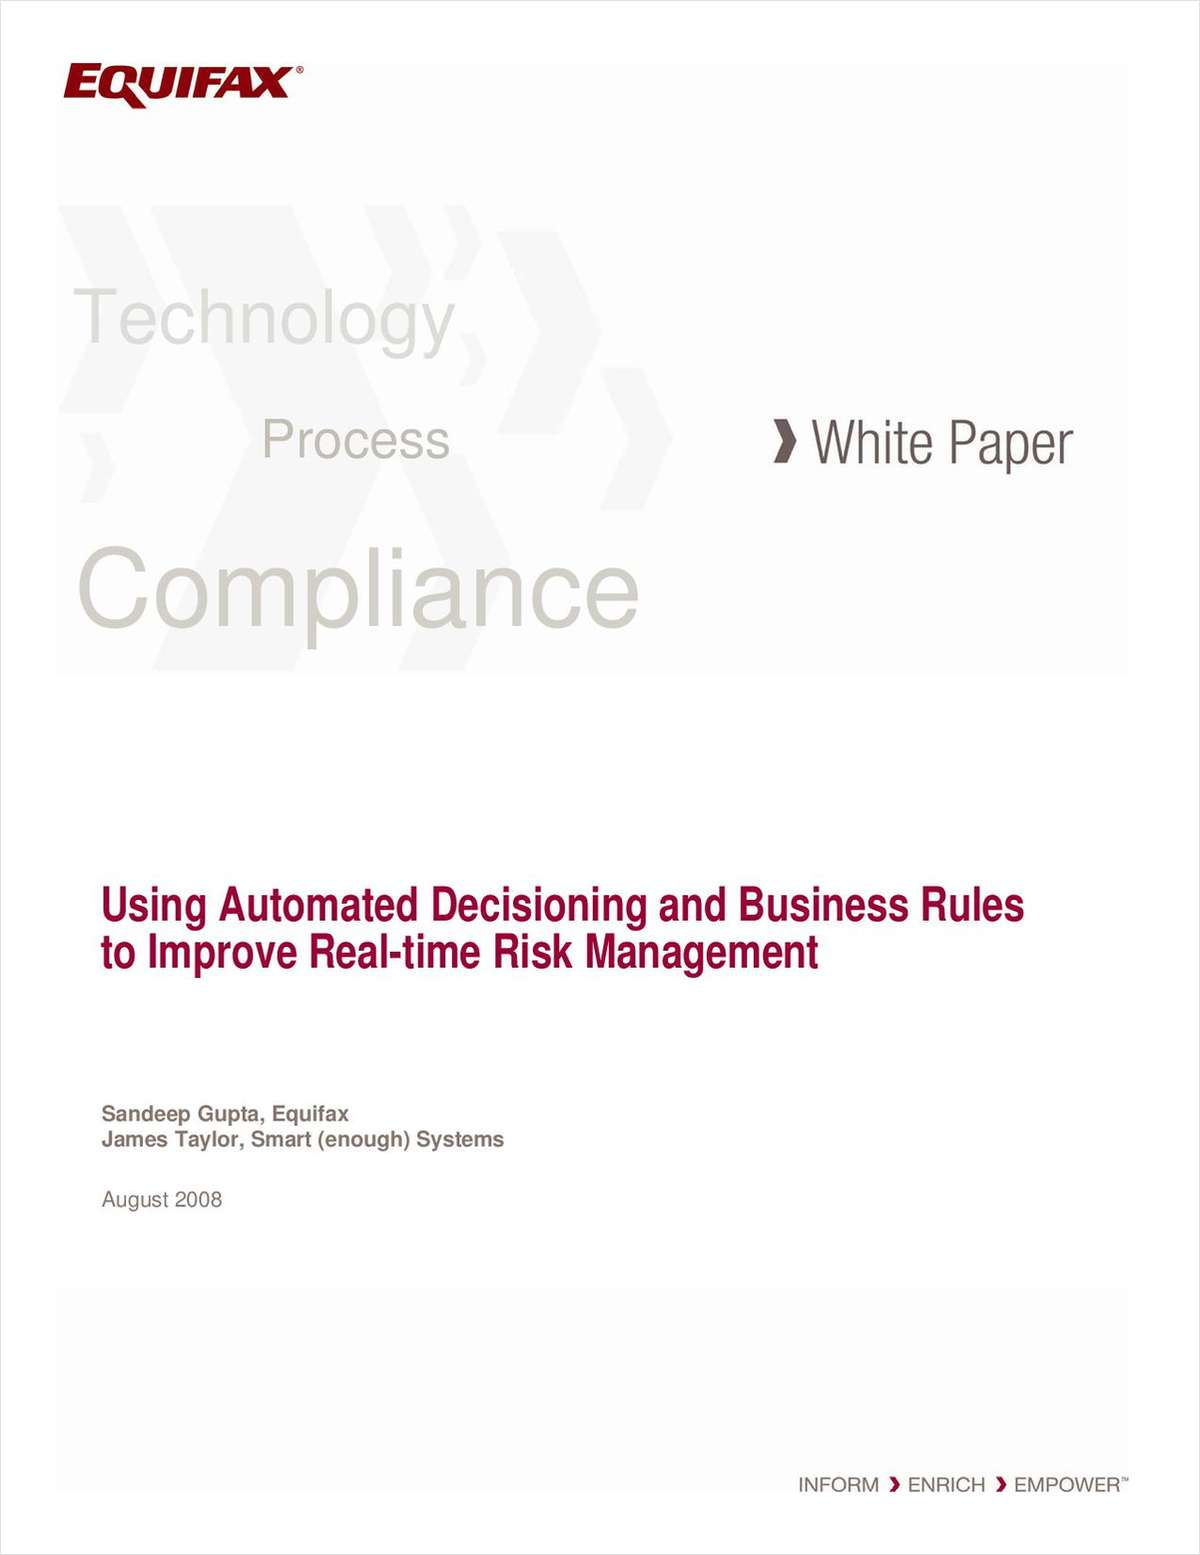 Using Automated Decisioning and Business to Improve Real-time Risk Management